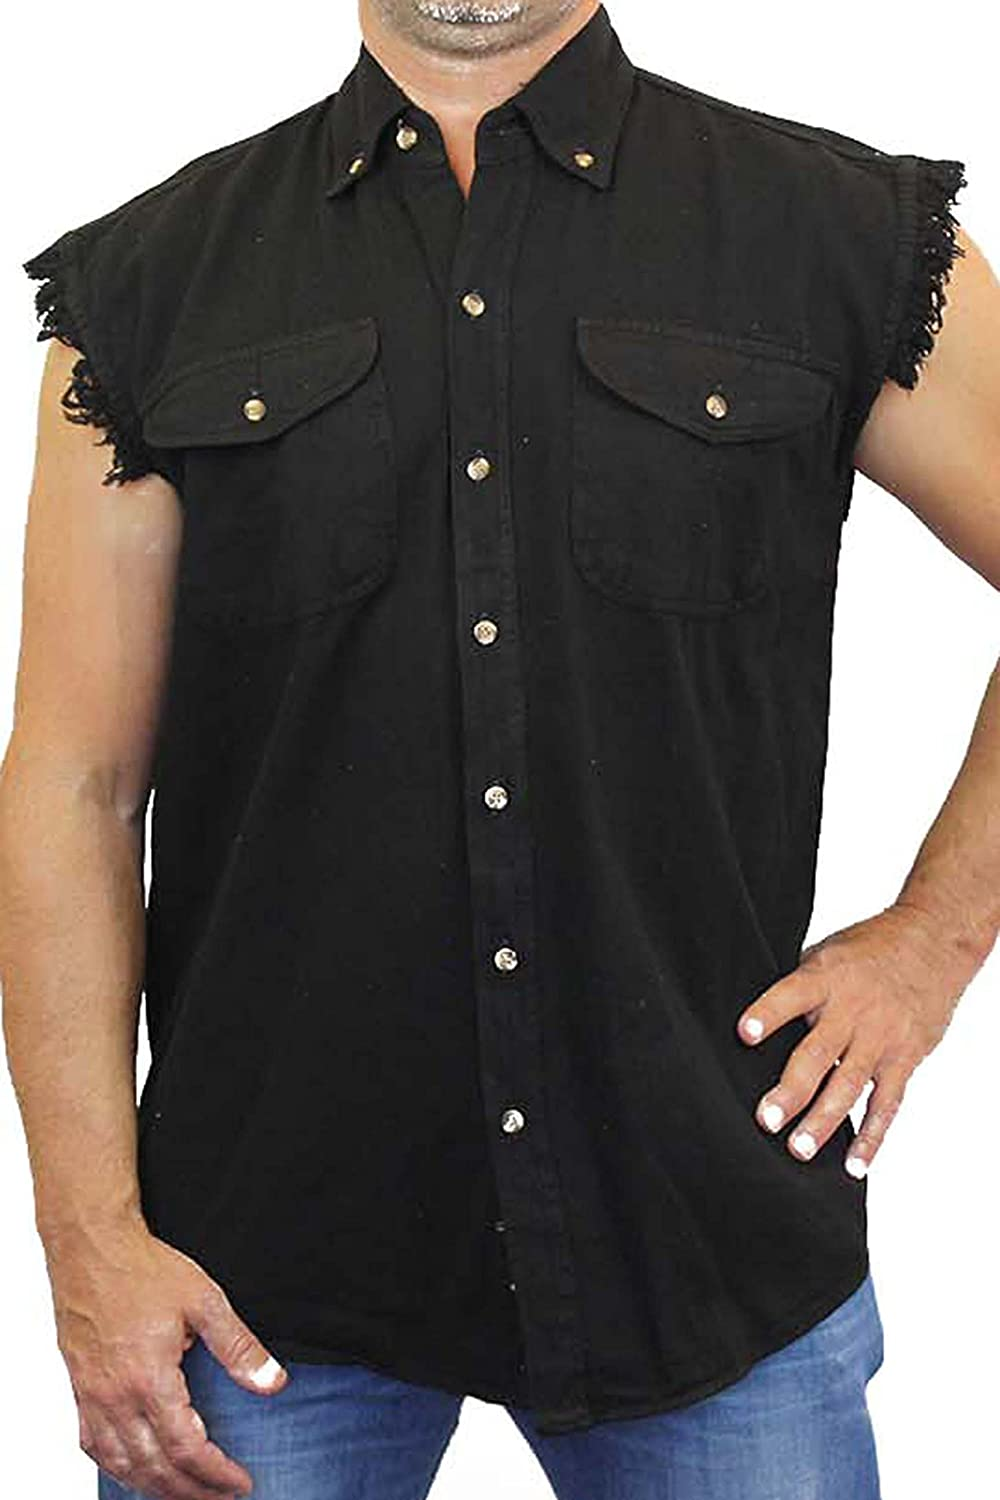 Mens Sleeveless Denim Shirt Freedom Statue of Liberty Biker Vest 5XL LIGHTDENIM